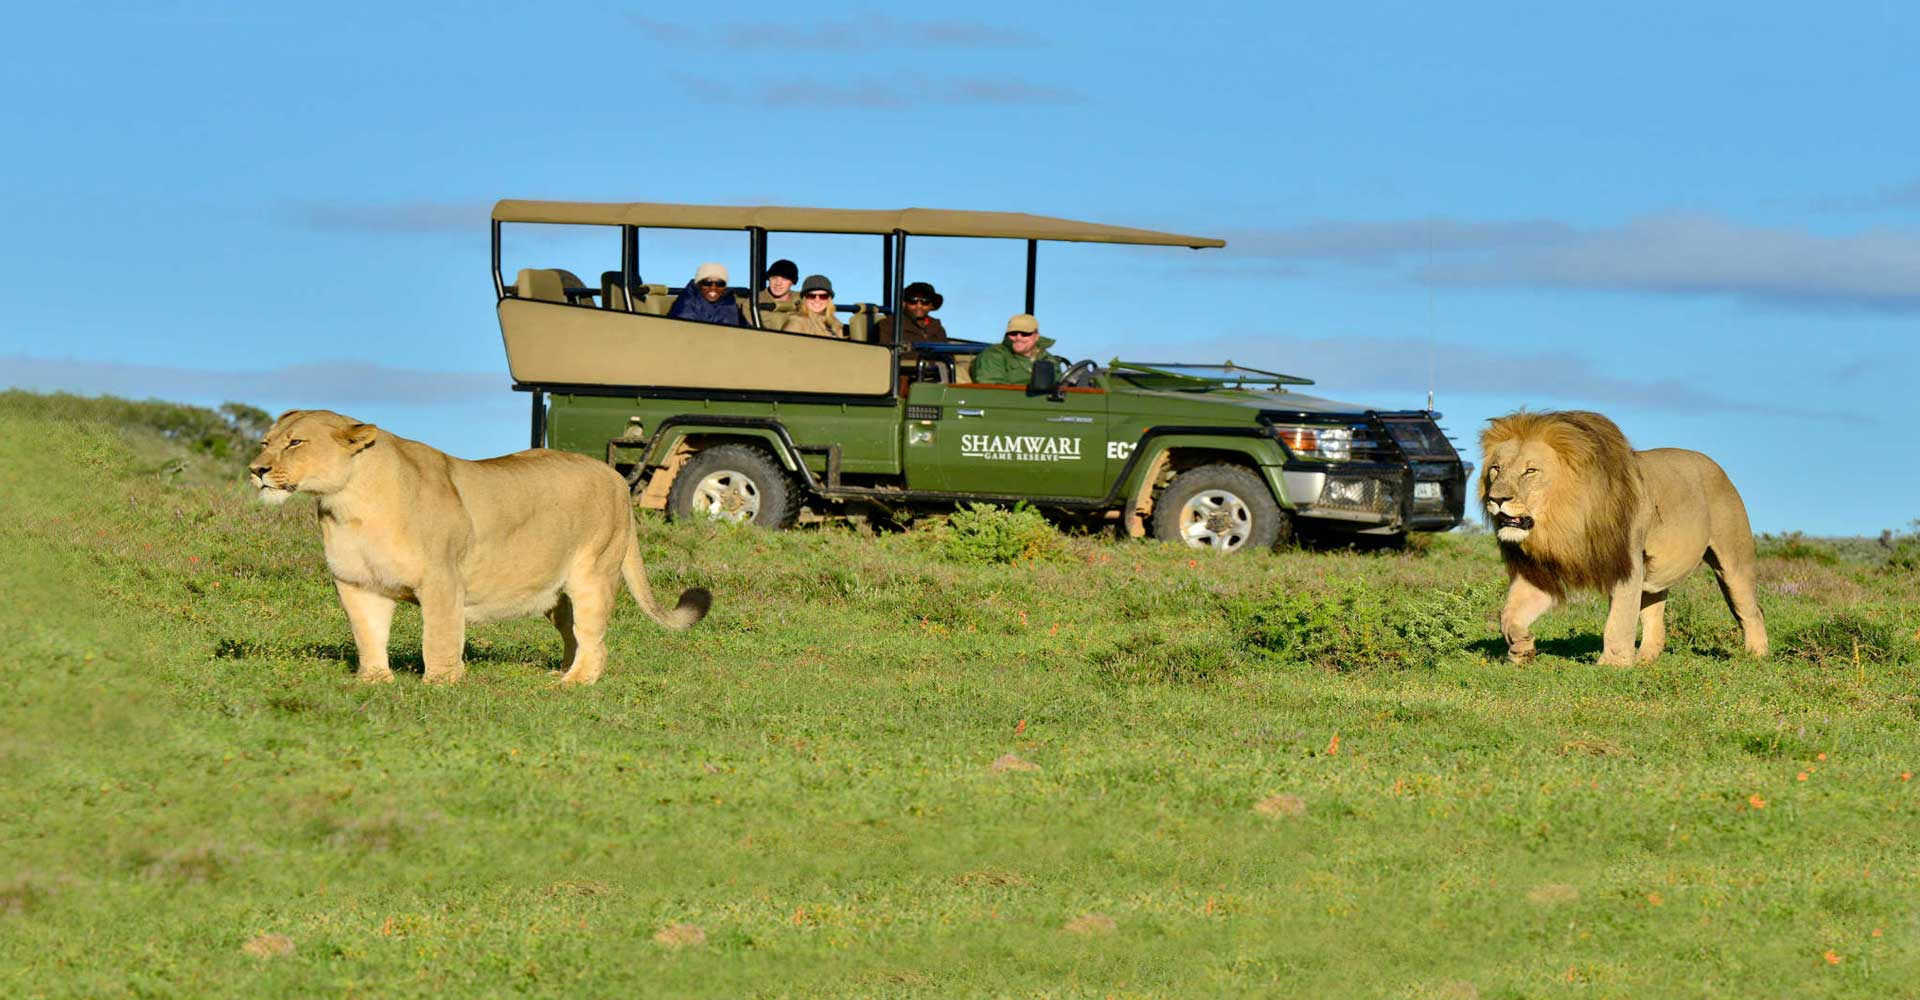 SAFARI NO SHAMWARI GAME RESERVE